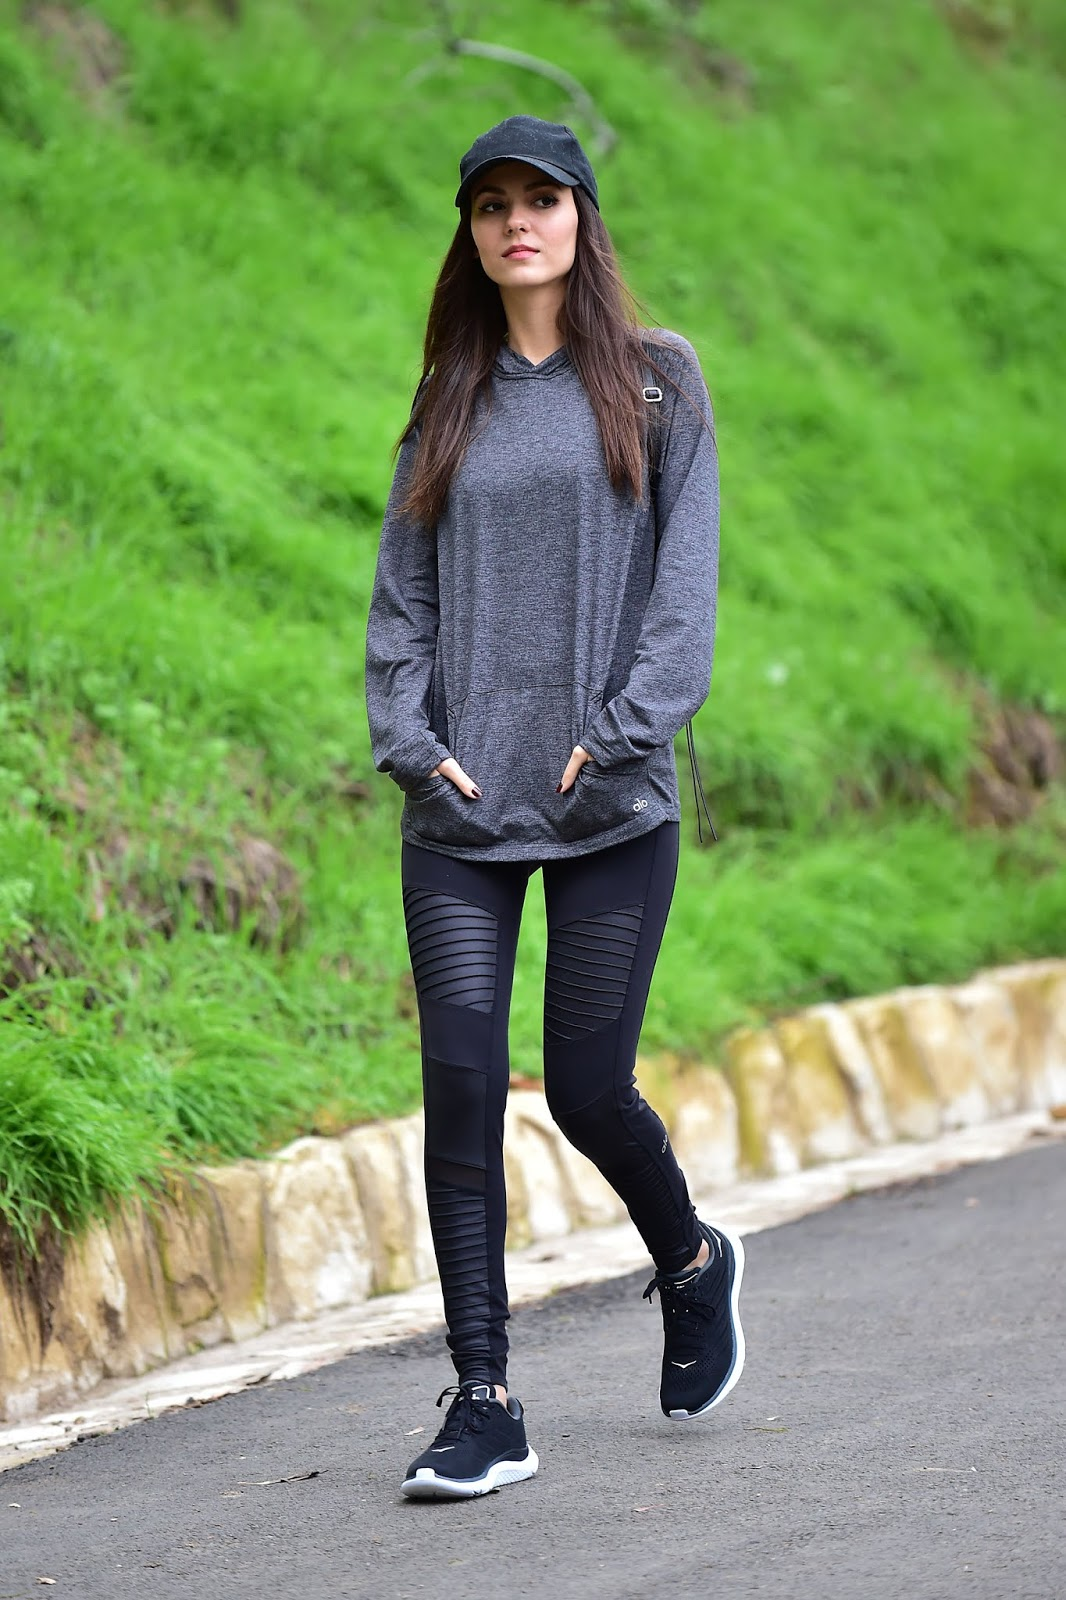 Victoria Justice - Out and About, LA - 02/04/2019